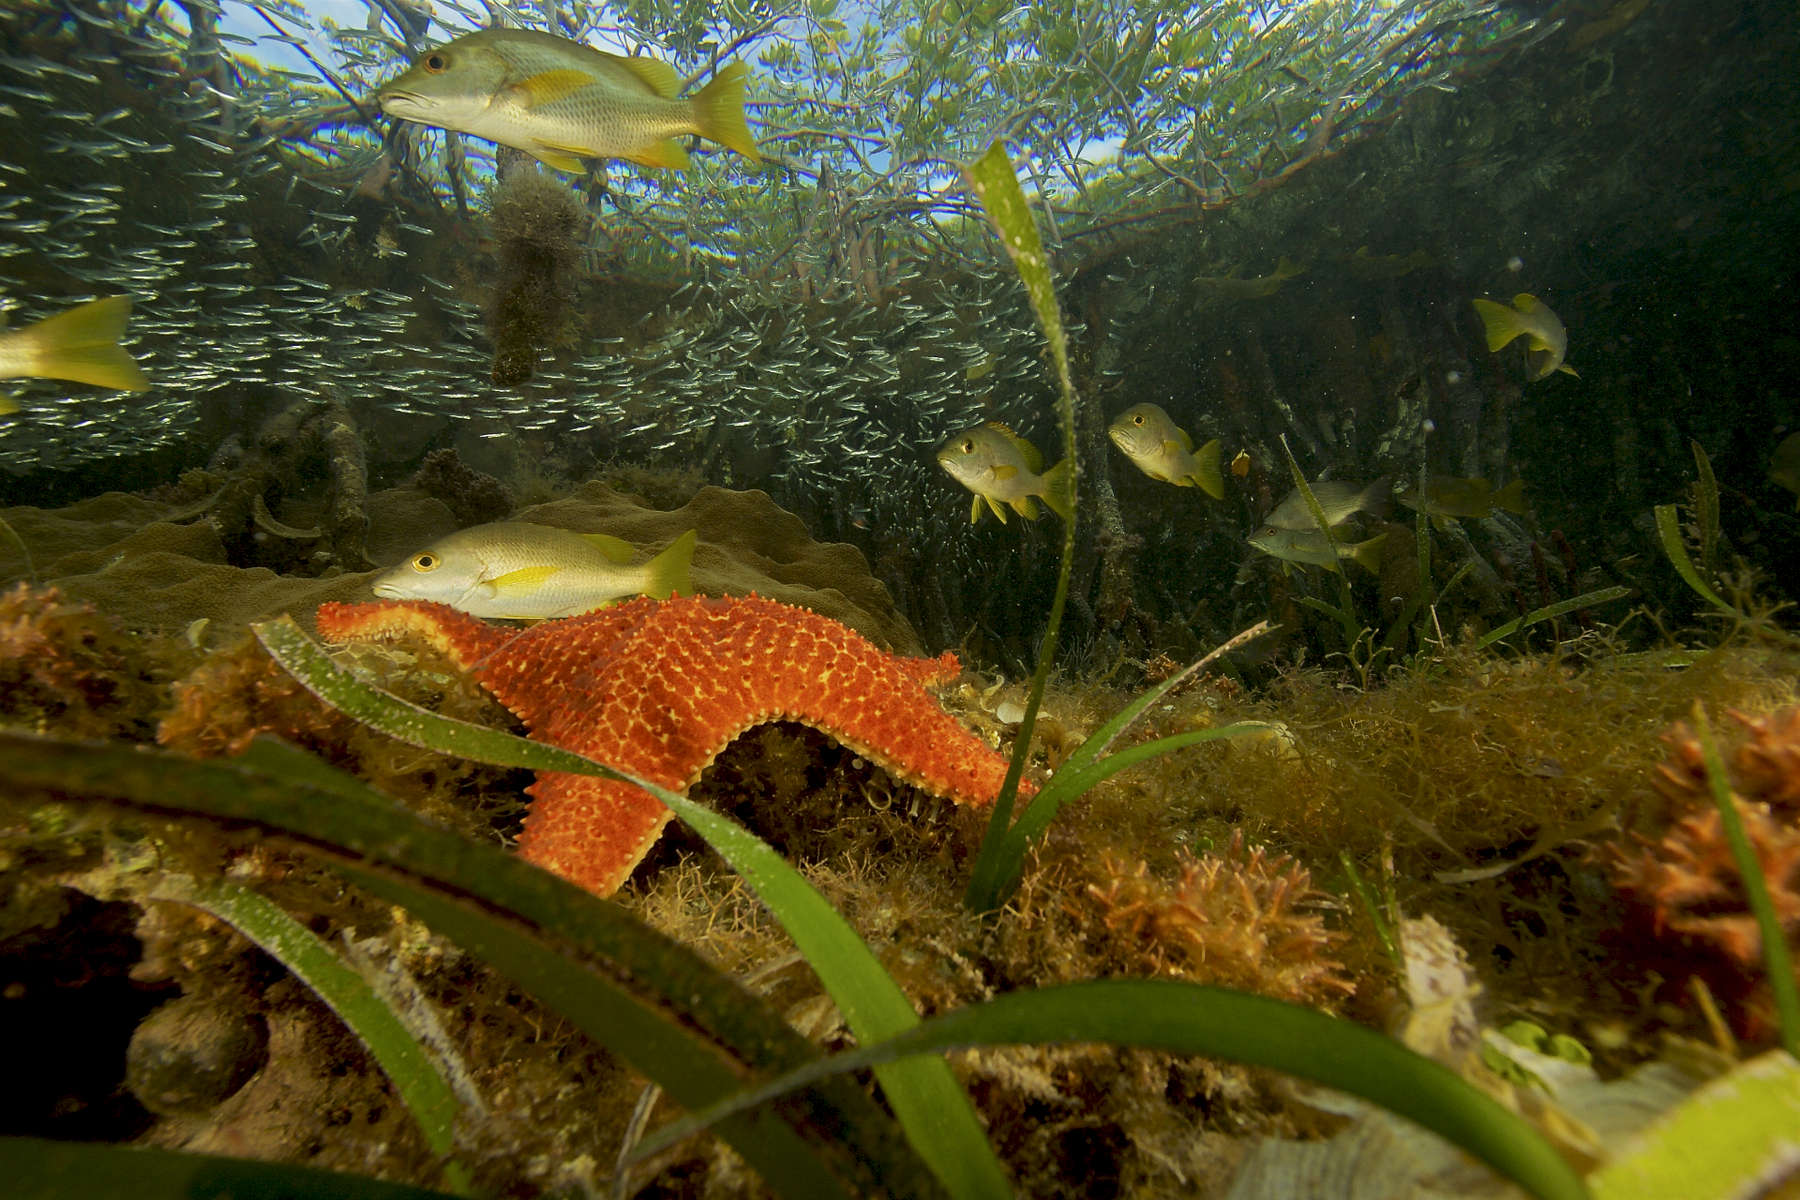 Snappers, silversides, and a sea star share space in the underwater world of the mangrove forest.